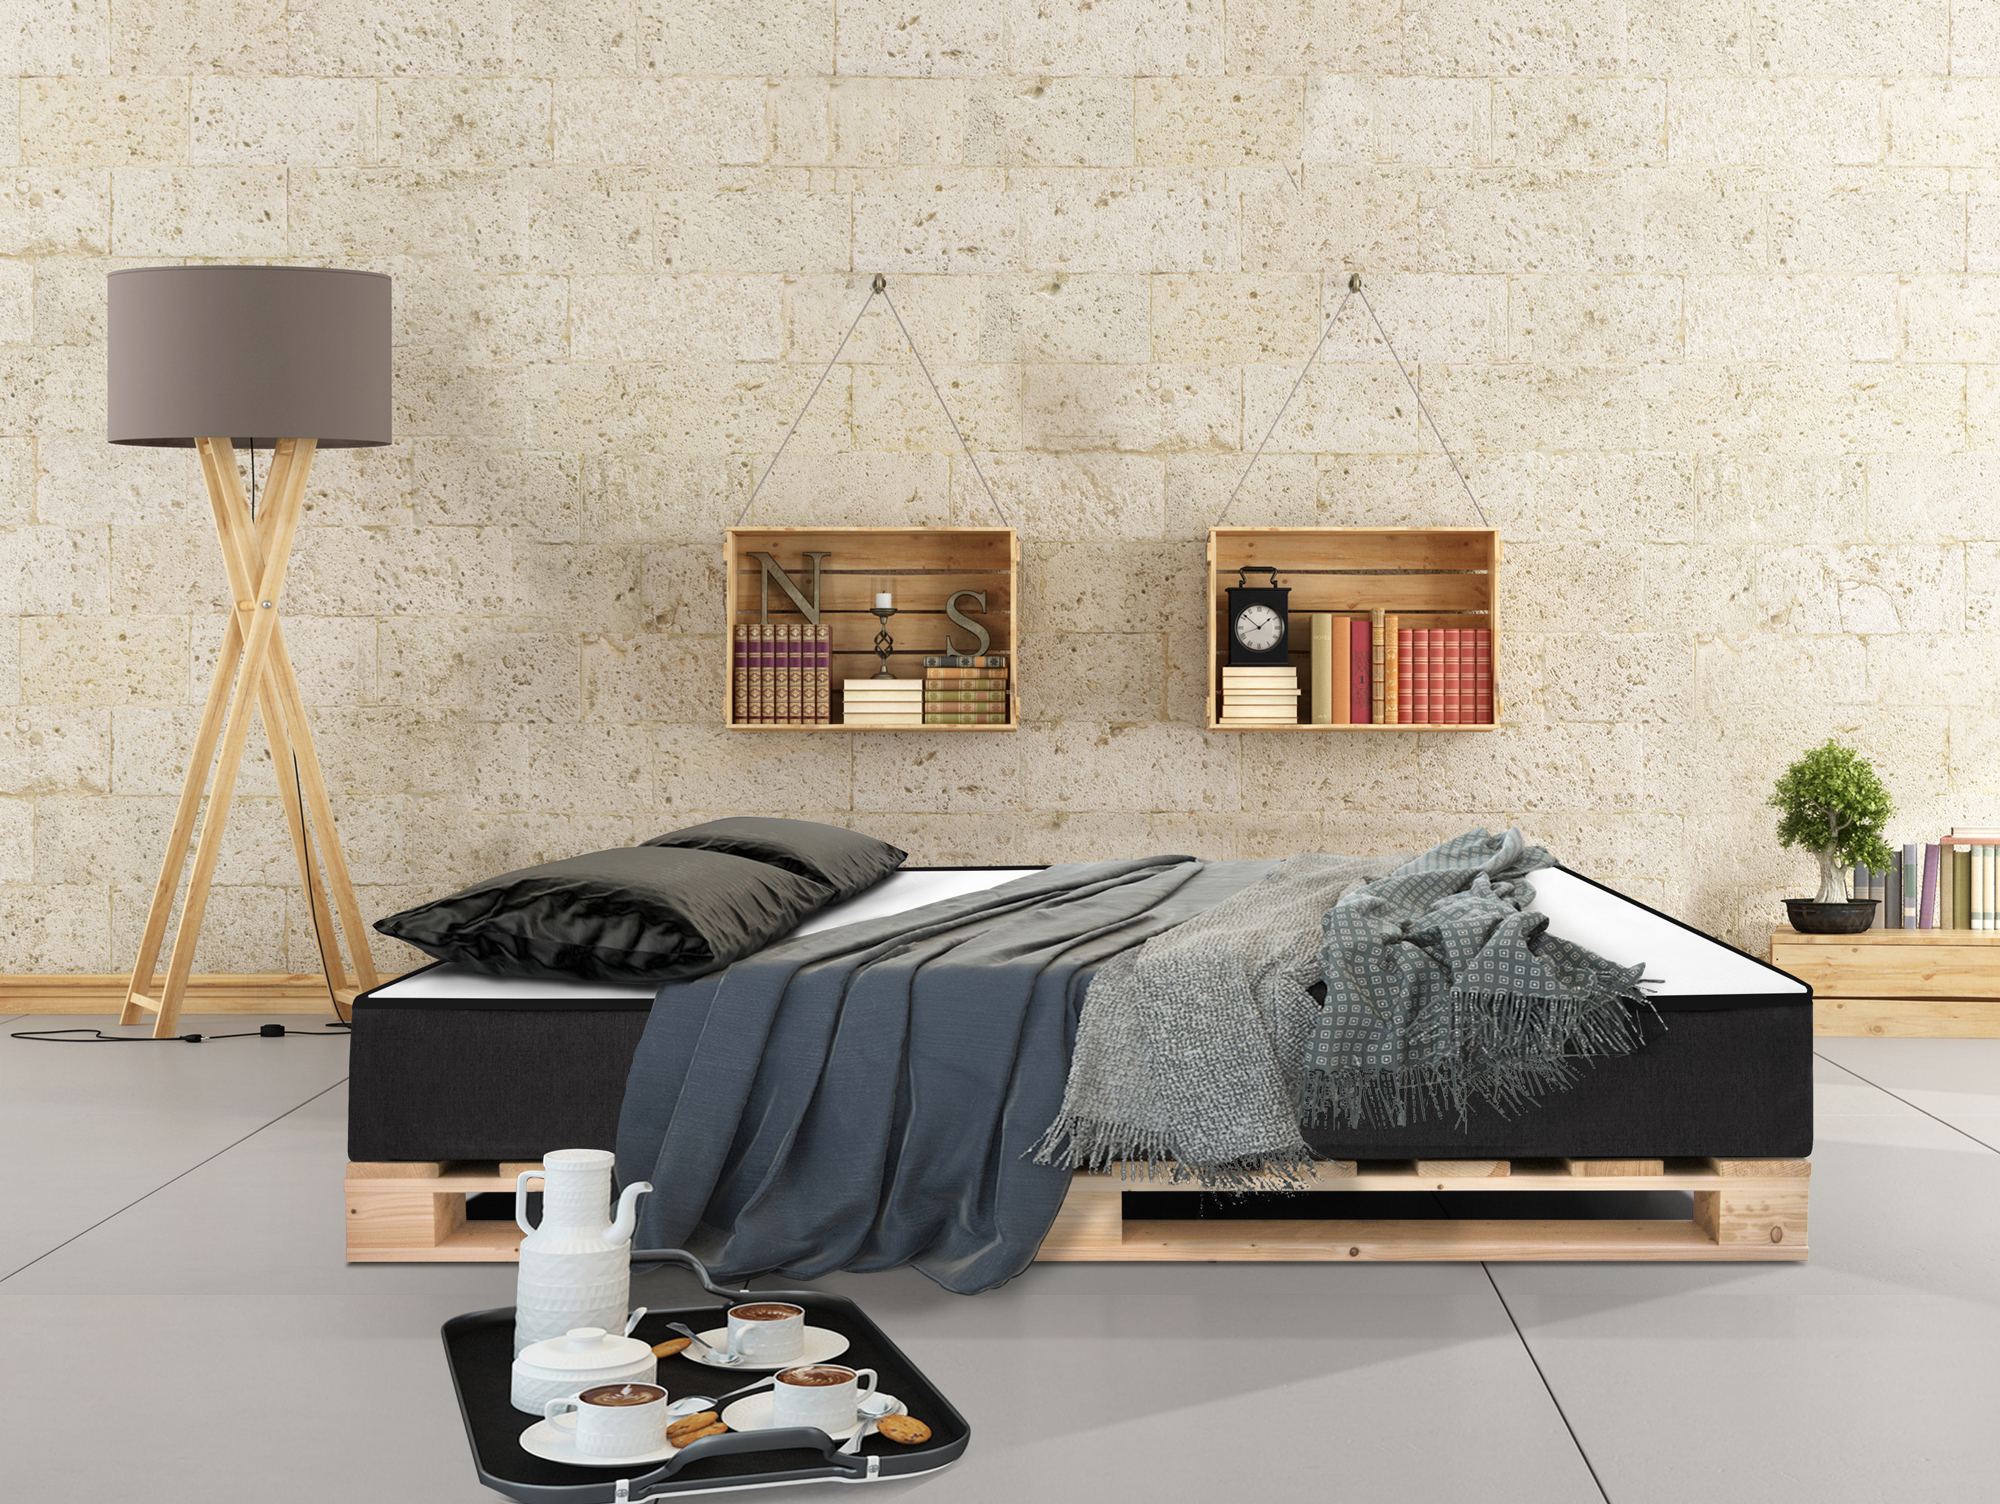 paletti palettenbett inkl moody matratze 90 x 200 cm fichte natur. Black Bedroom Furniture Sets. Home Design Ideas